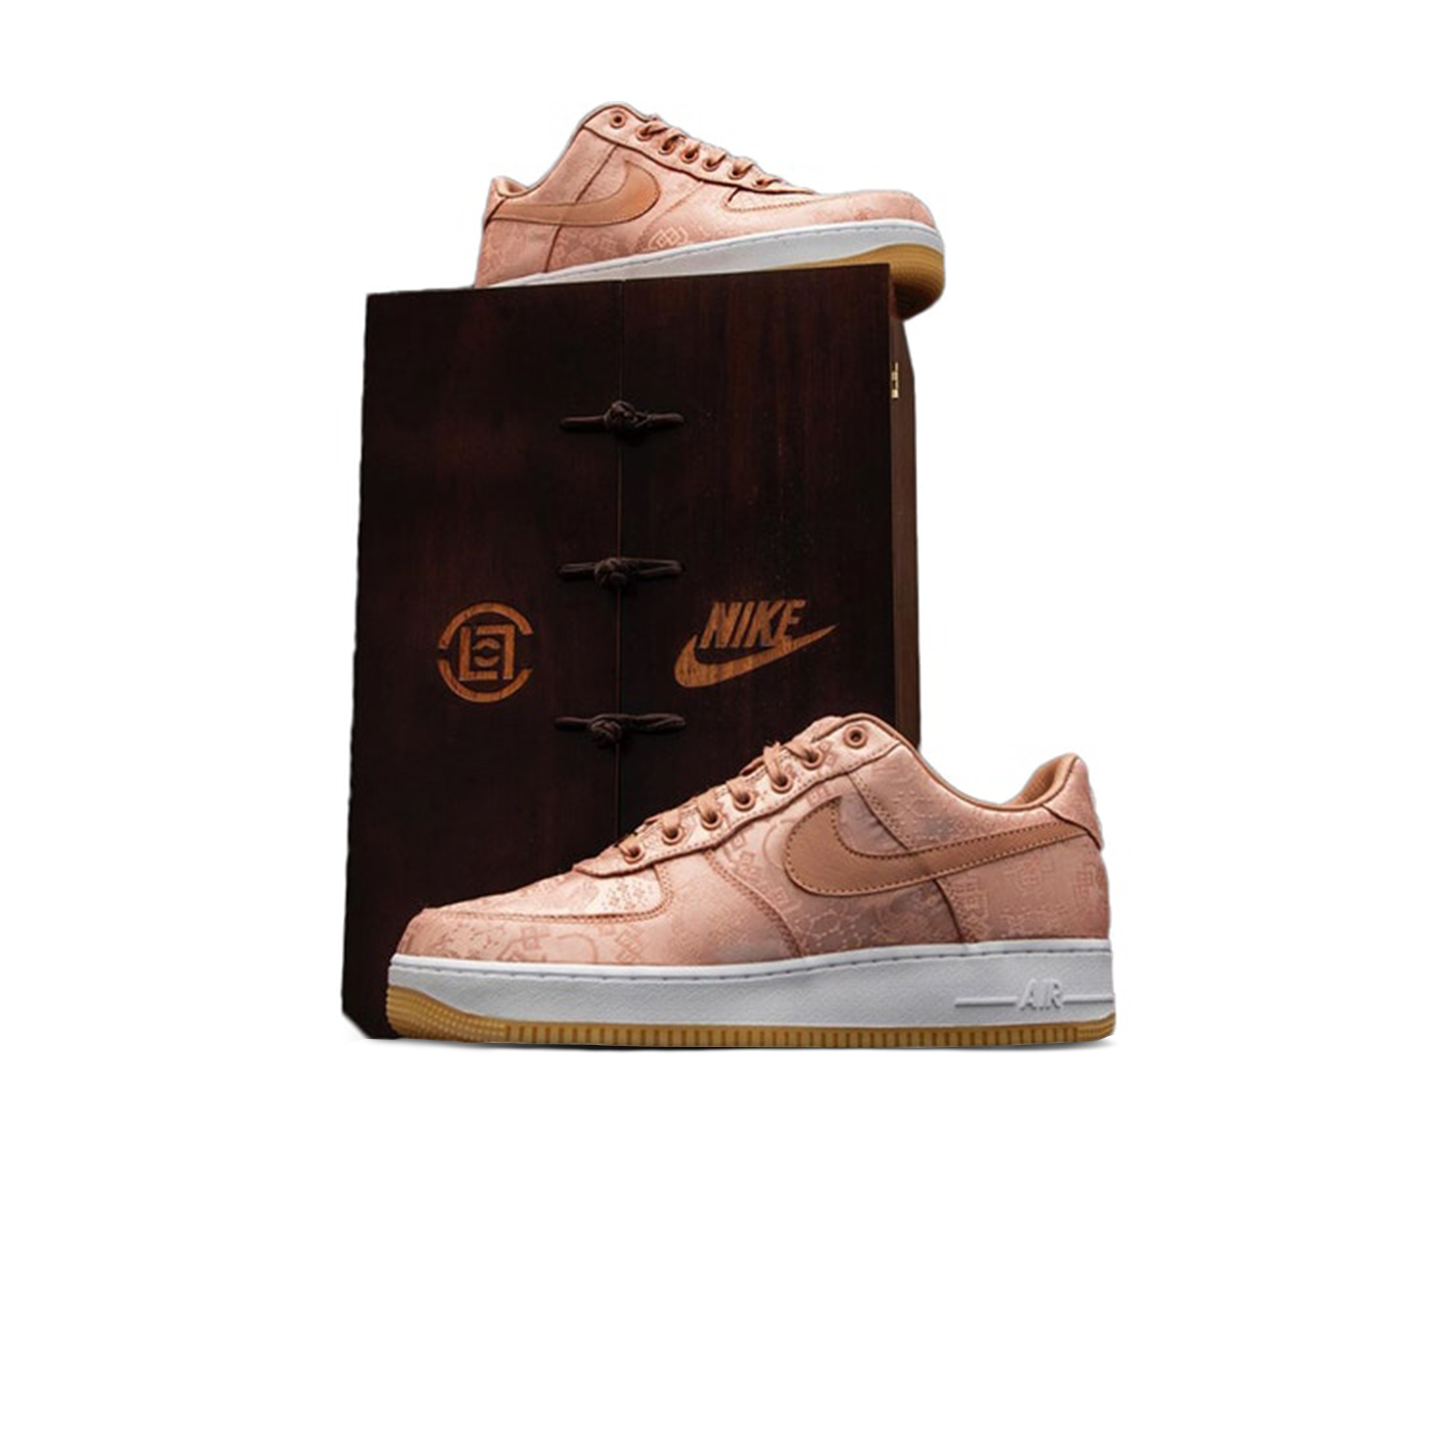 Nike-Air-Force-1-Low-Clot-Rose-Gold-Silk-Special-Box